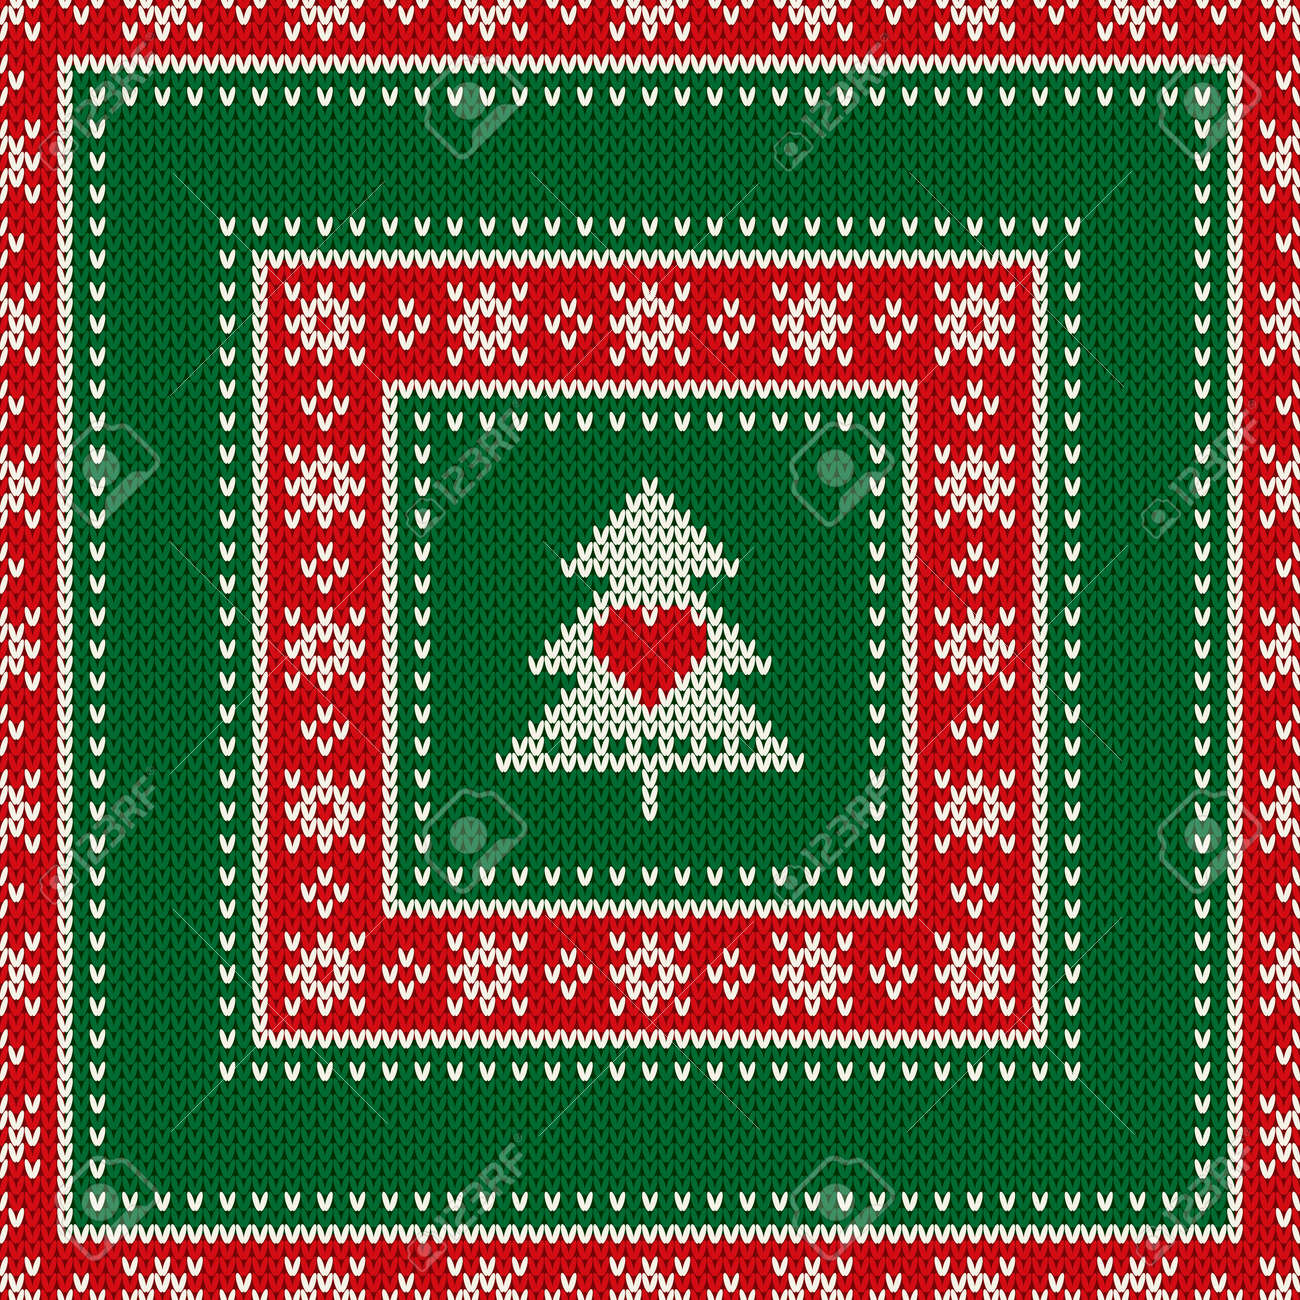 Winter Holiday Seamless Knitted Pattern With Christmas Tree And ...